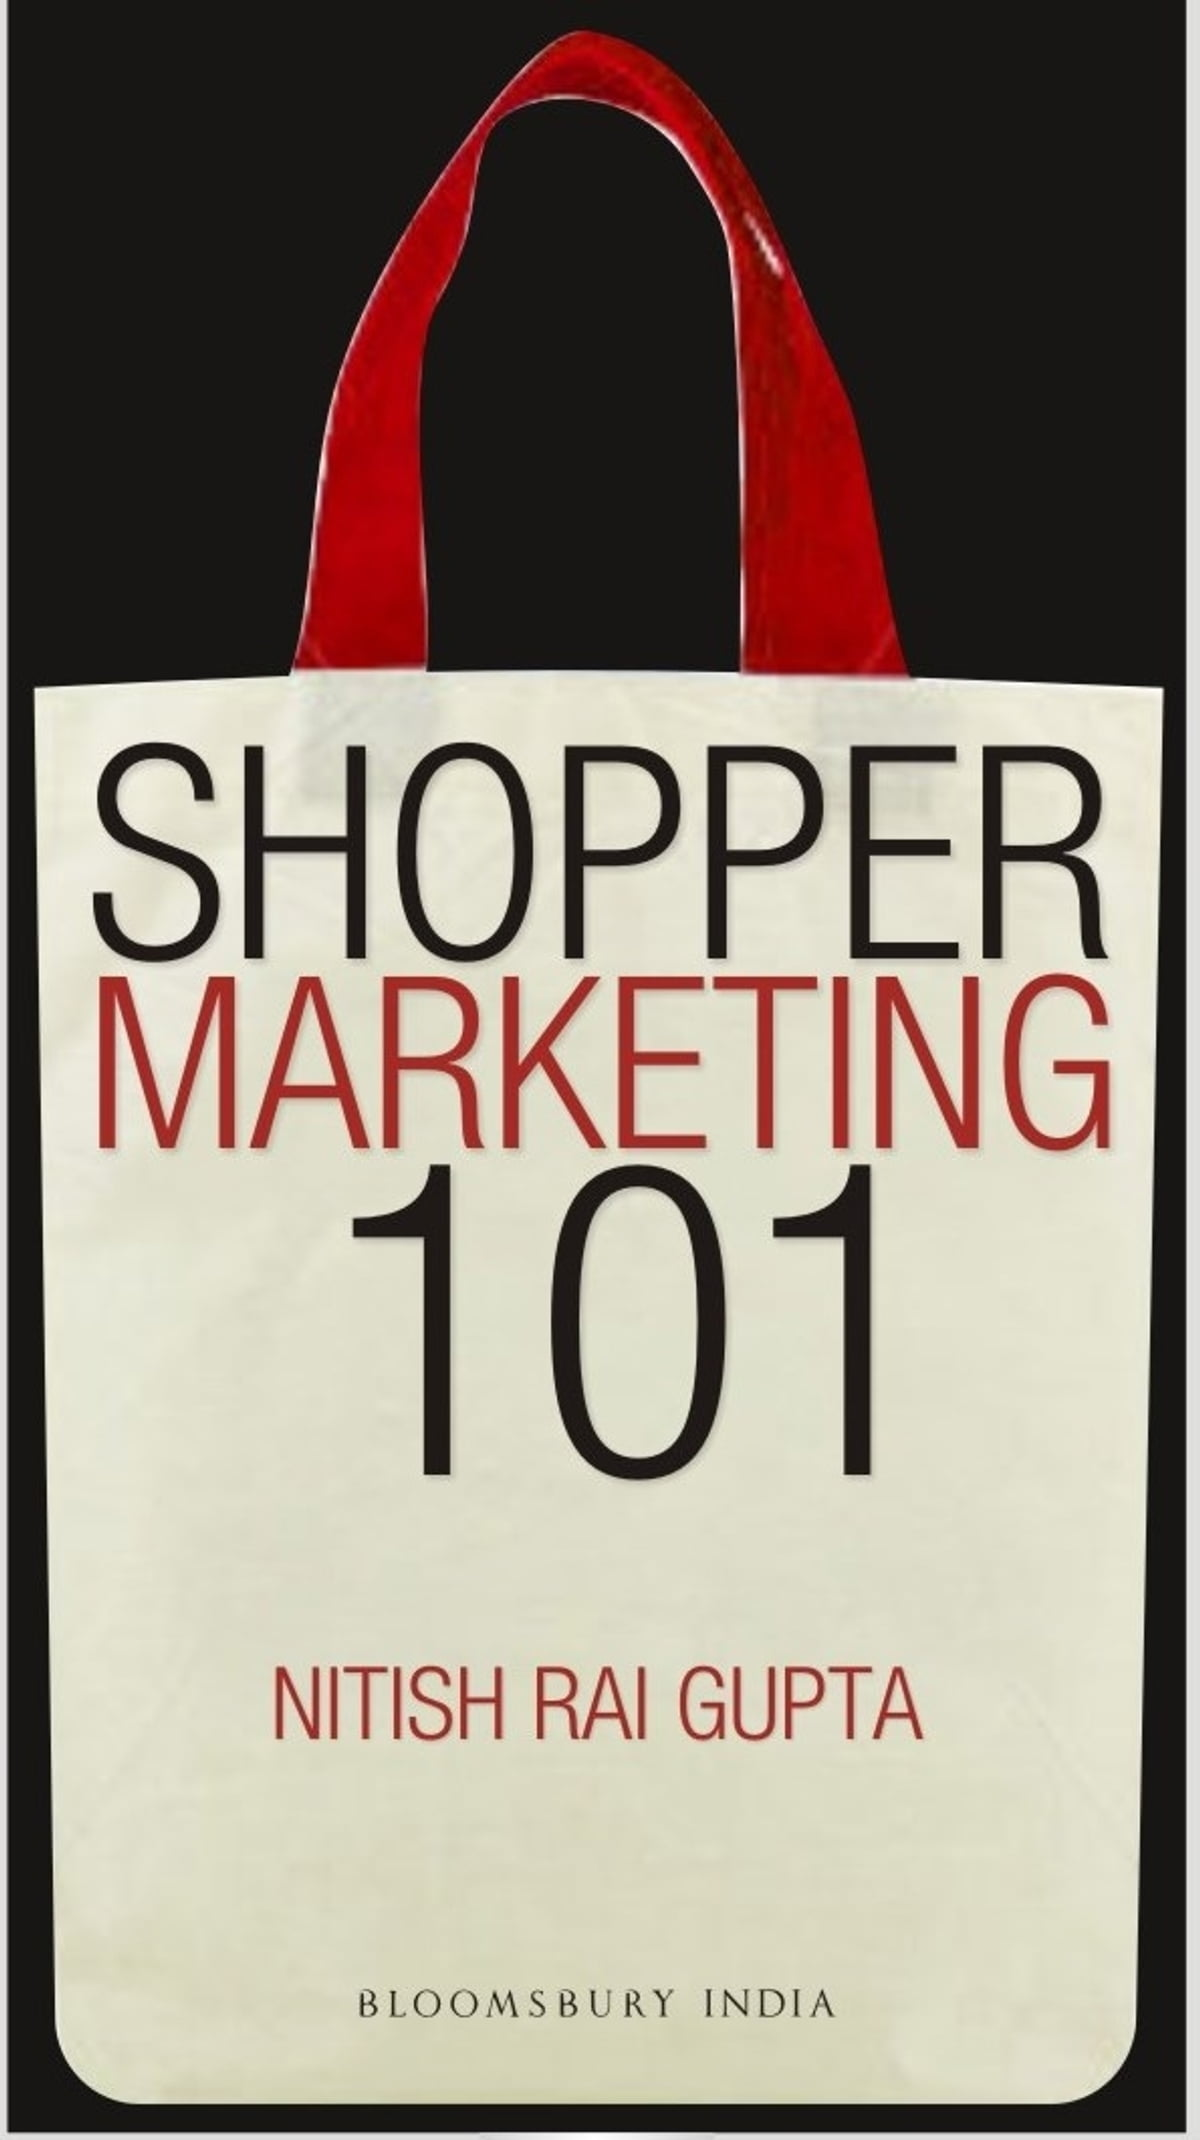 Shopper Marketing 101 eBook by Mr. Nitish Rai Gupta - 9789384898106 |  Rakuten Kobo